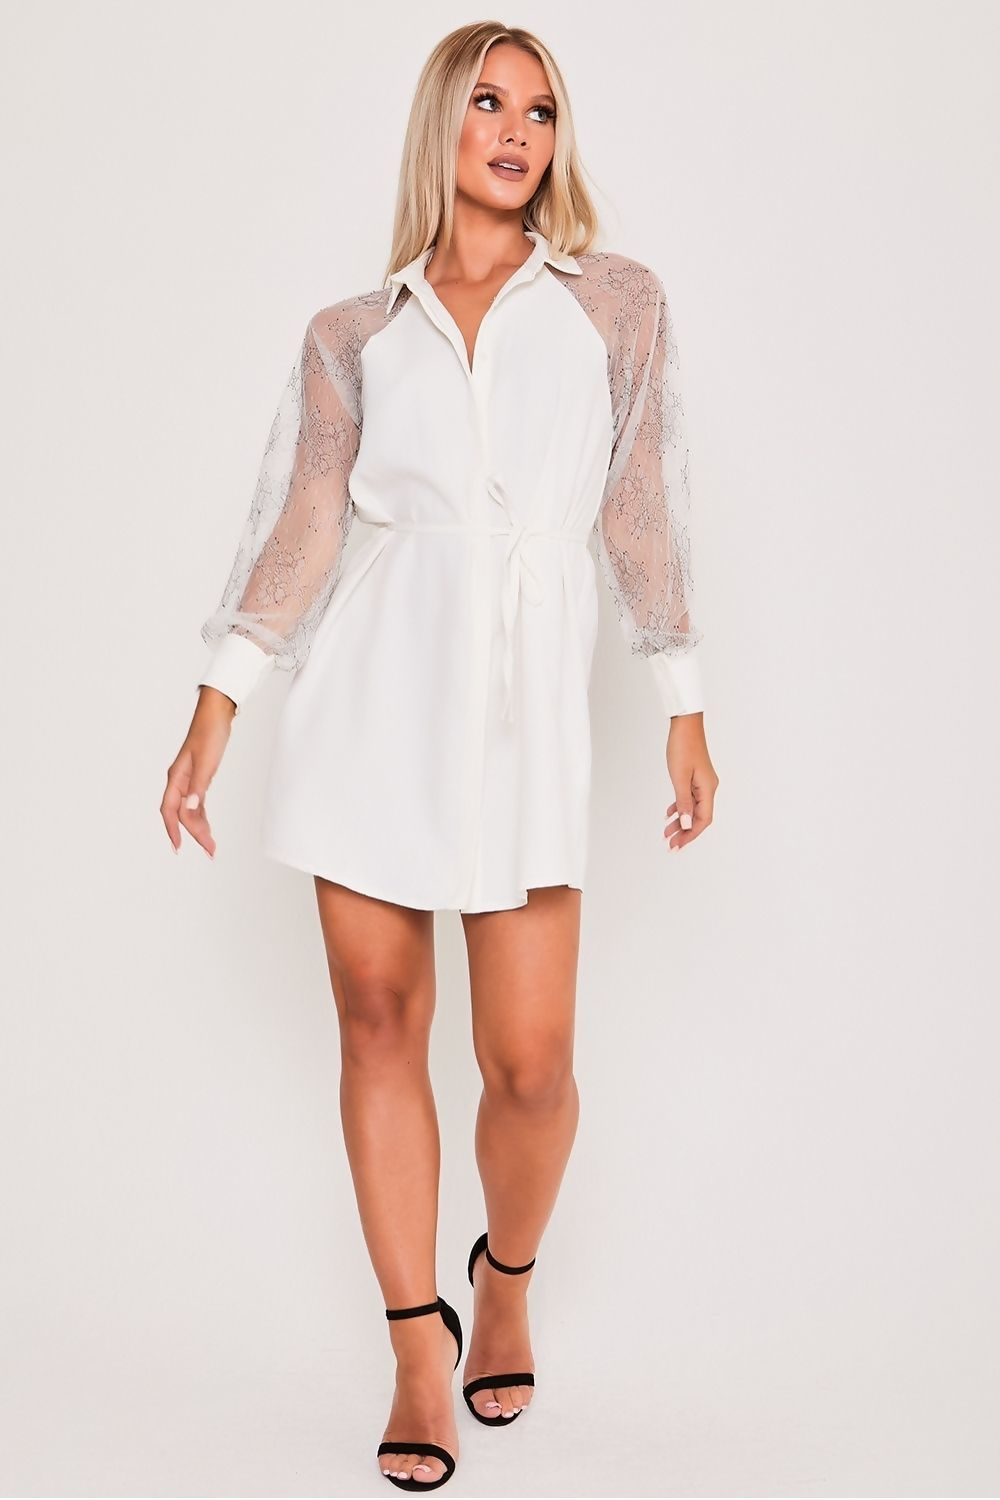 saint-genies-white-lace-sleeve-belted-shirt-dress-1.jpg